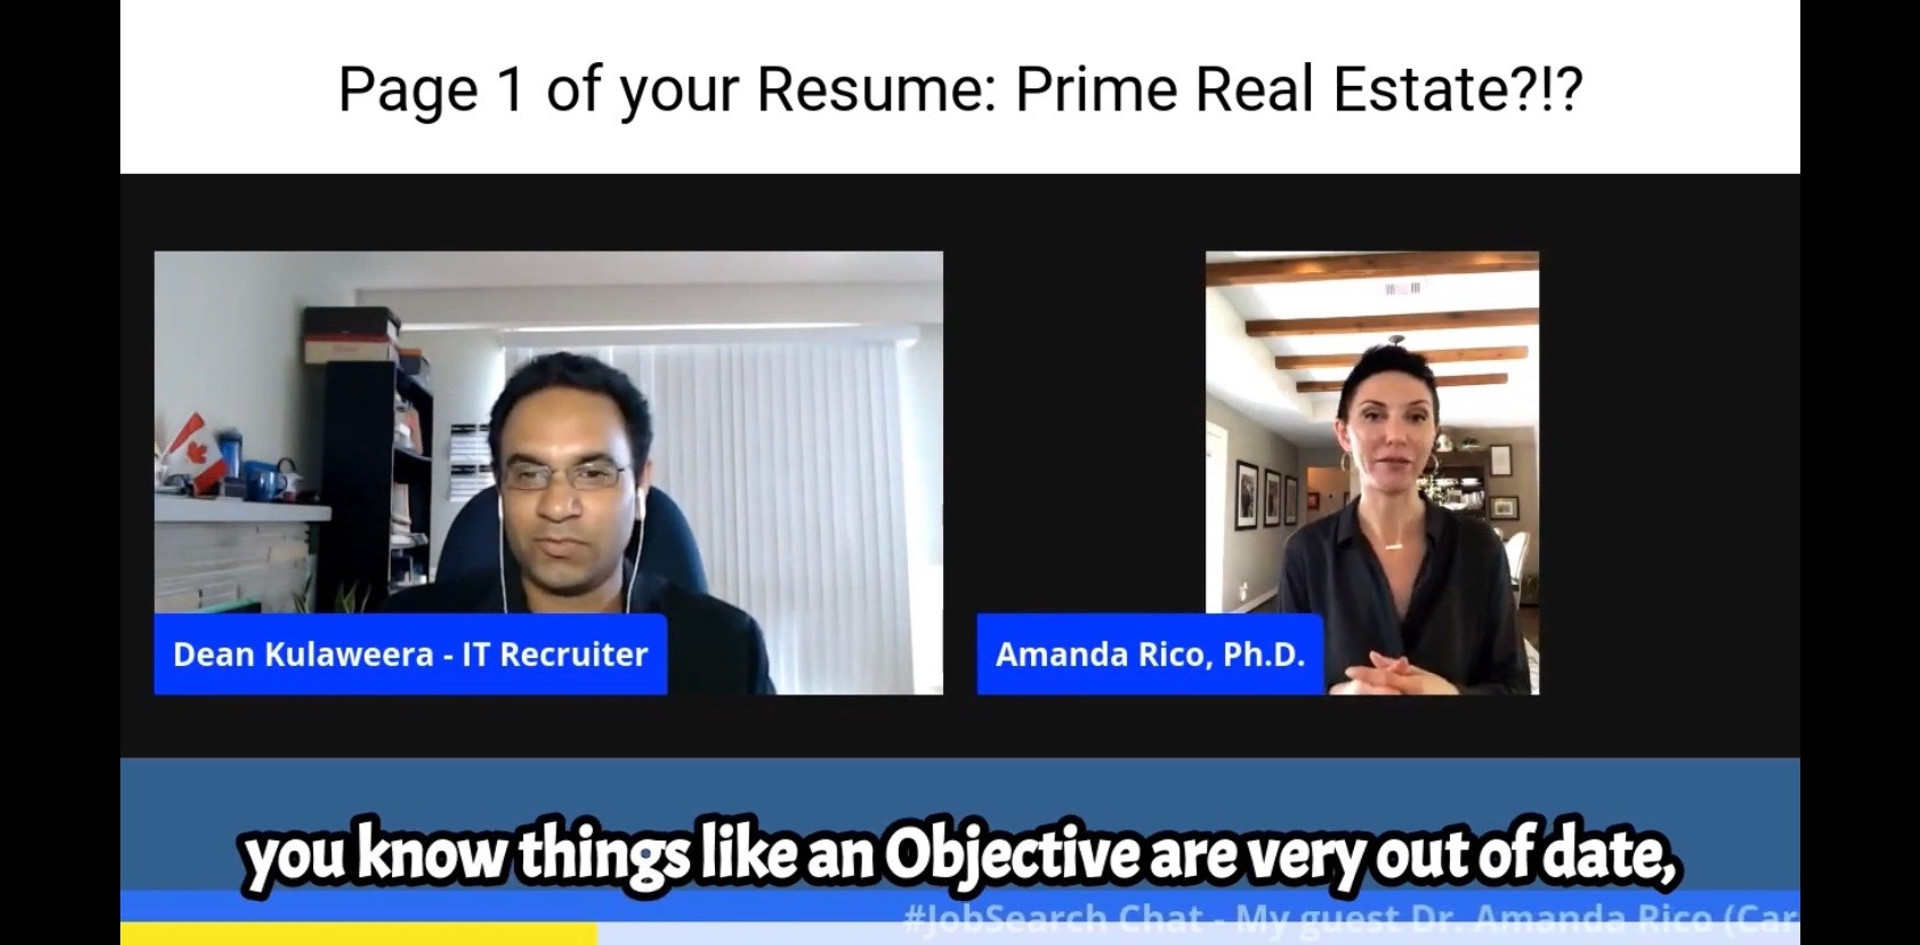 How to Capture a Recruiter or Hiring Managers' Attention on Your Resume